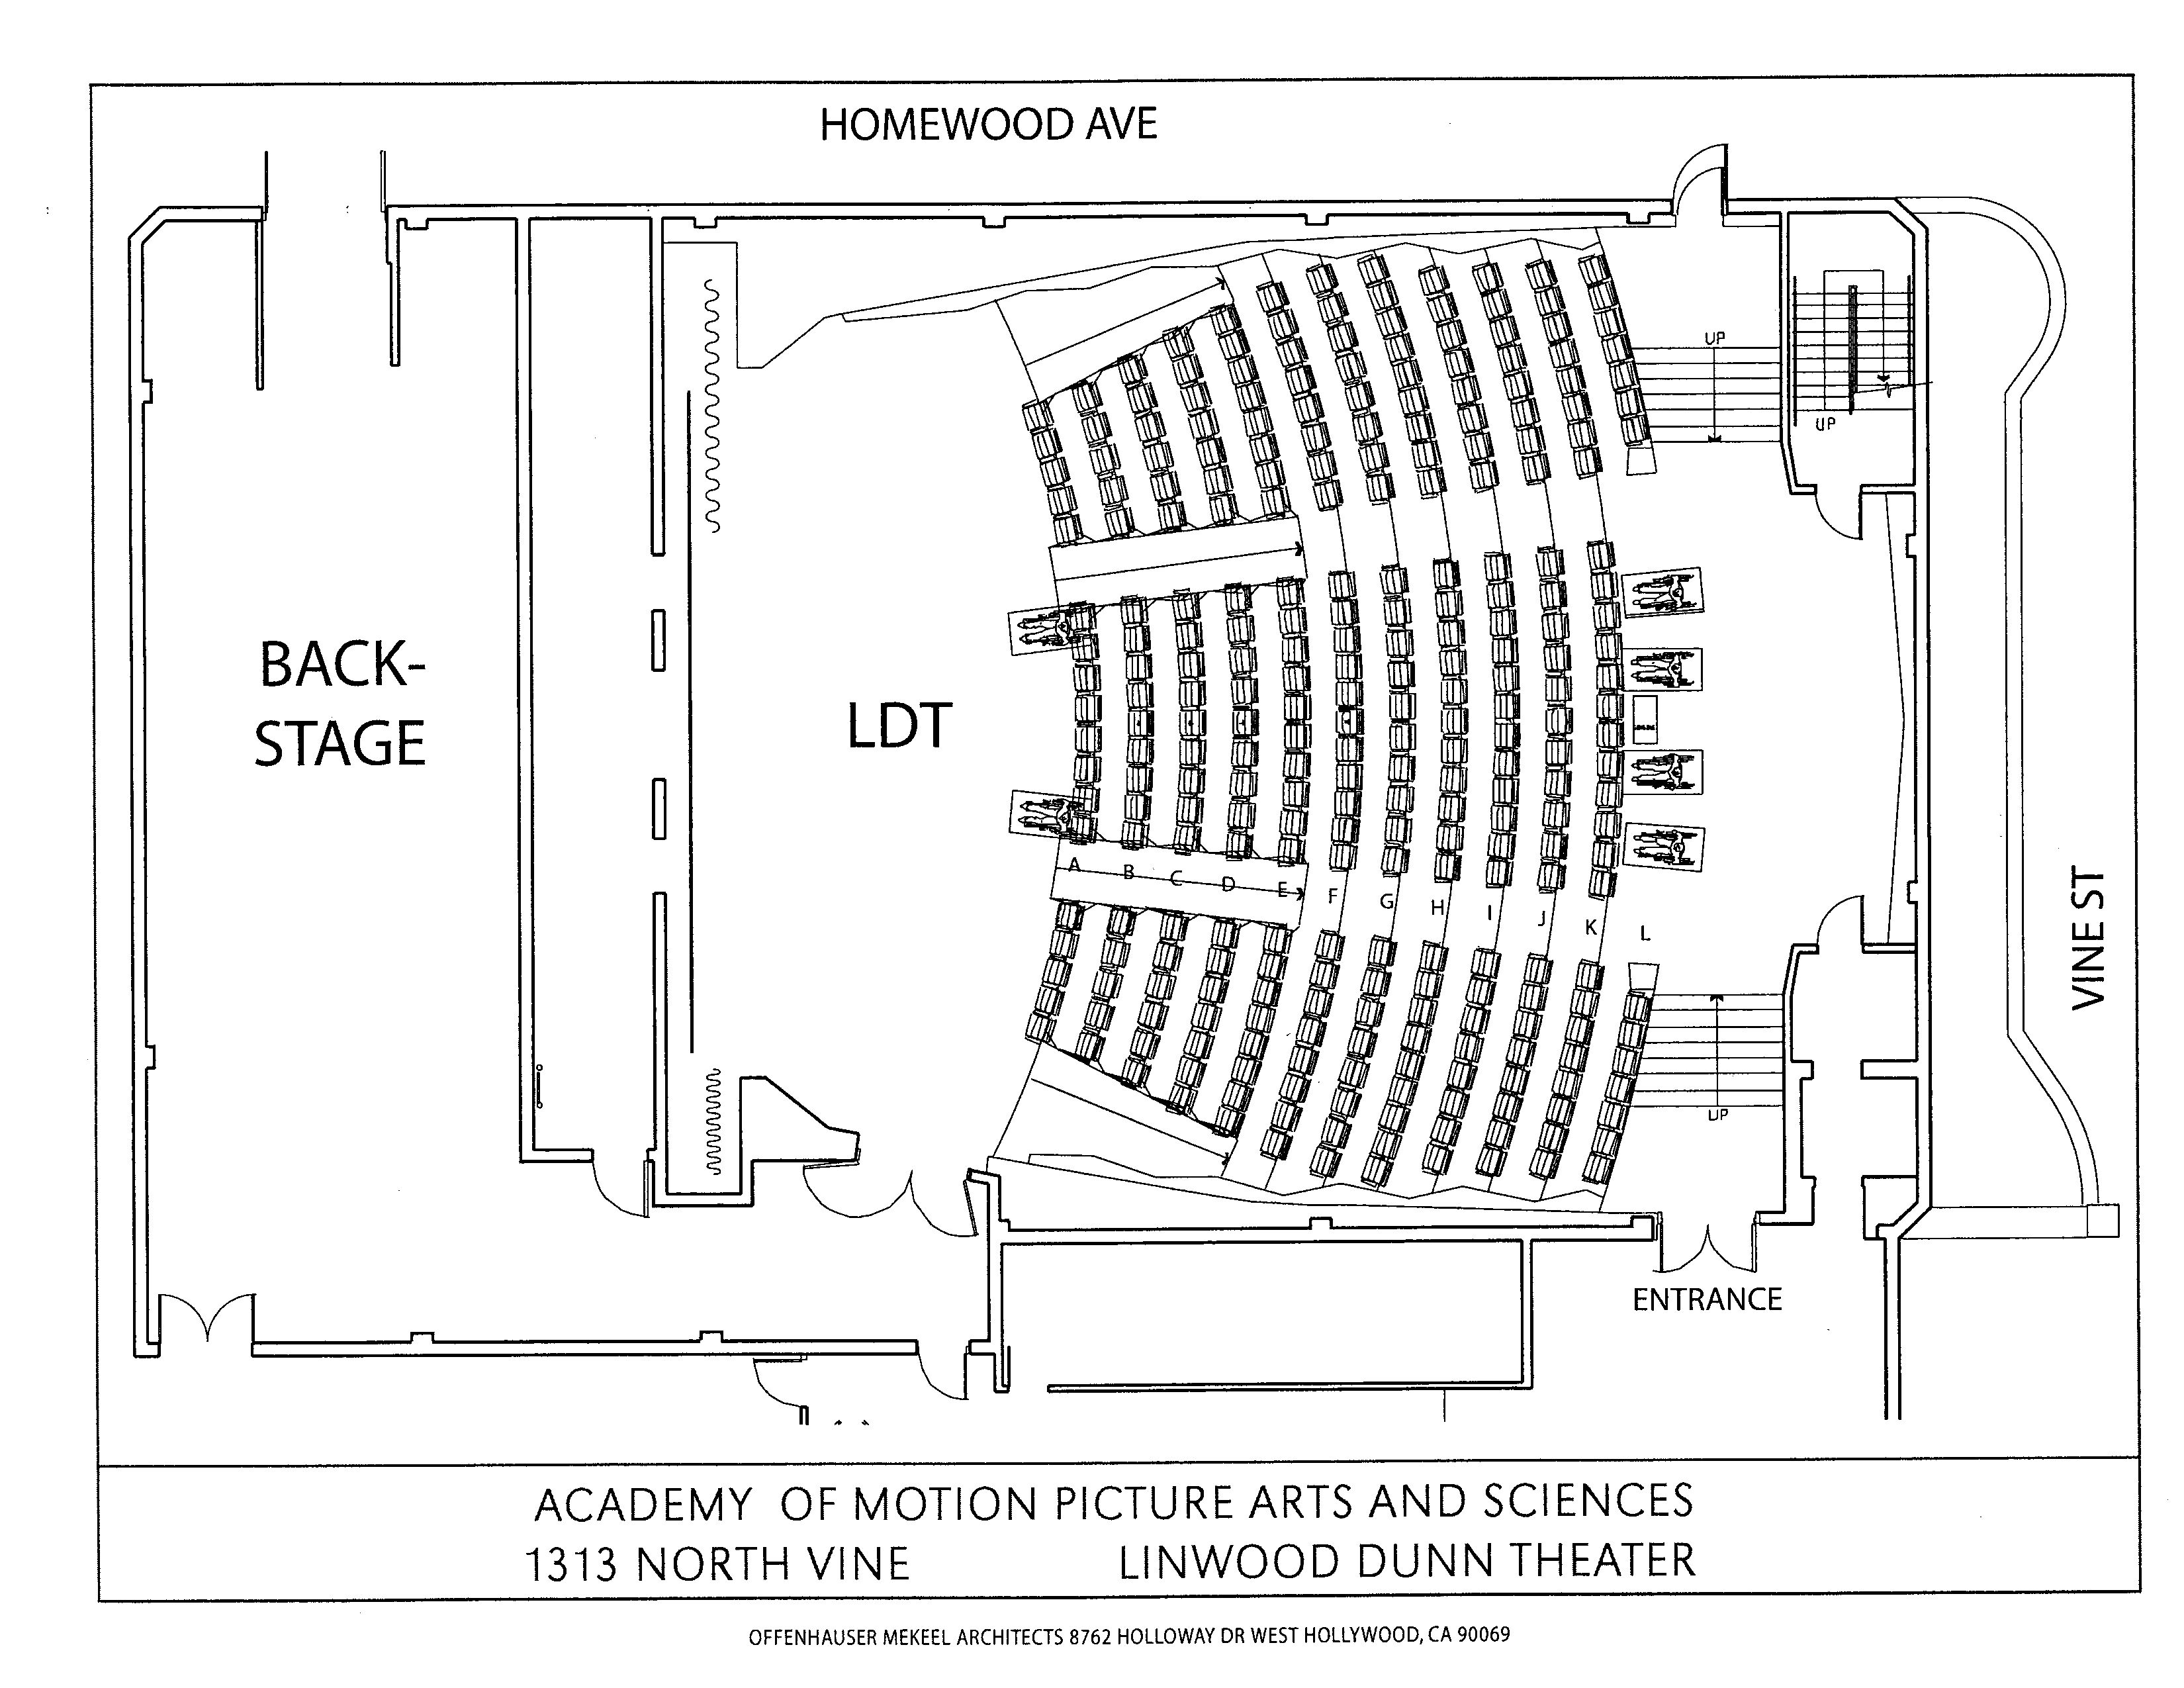 1946 Academic Ielts Writing Task 1 S le 155 Plan A B Shows A Health Centre In 2005 And In Present Day also 582c3ae1e58ecee405000190 How To Design Theater Seating Shown Through 21 Detailed Ex le Layouts Image further Illawarra Kiama Conference Venue Specs besides Ladies Room Vintage Metal Sign p 28744 further Simple 4 bedroom house plans. on seating for theater room